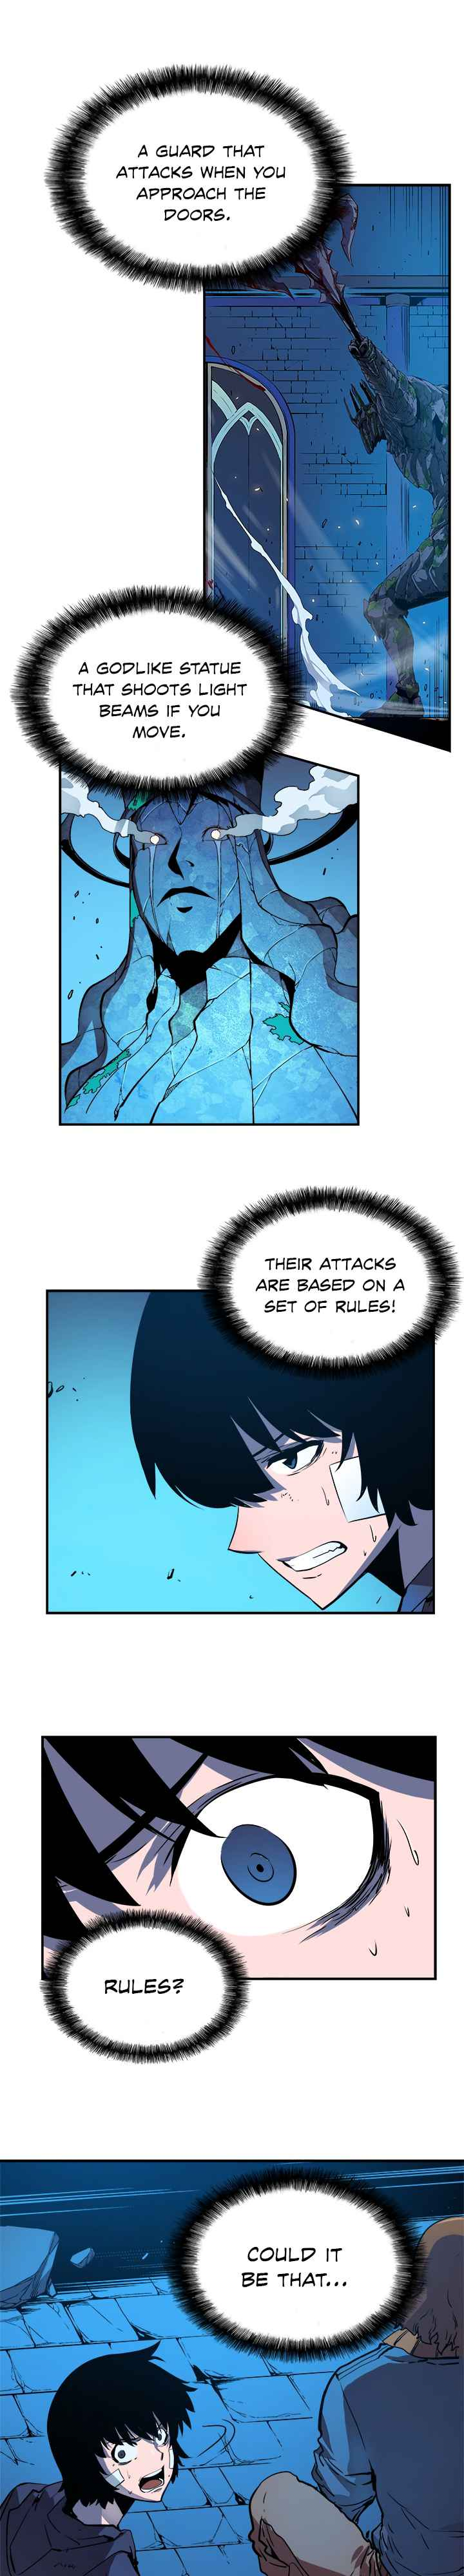 Solo Leveling Chapter 5 Page 17